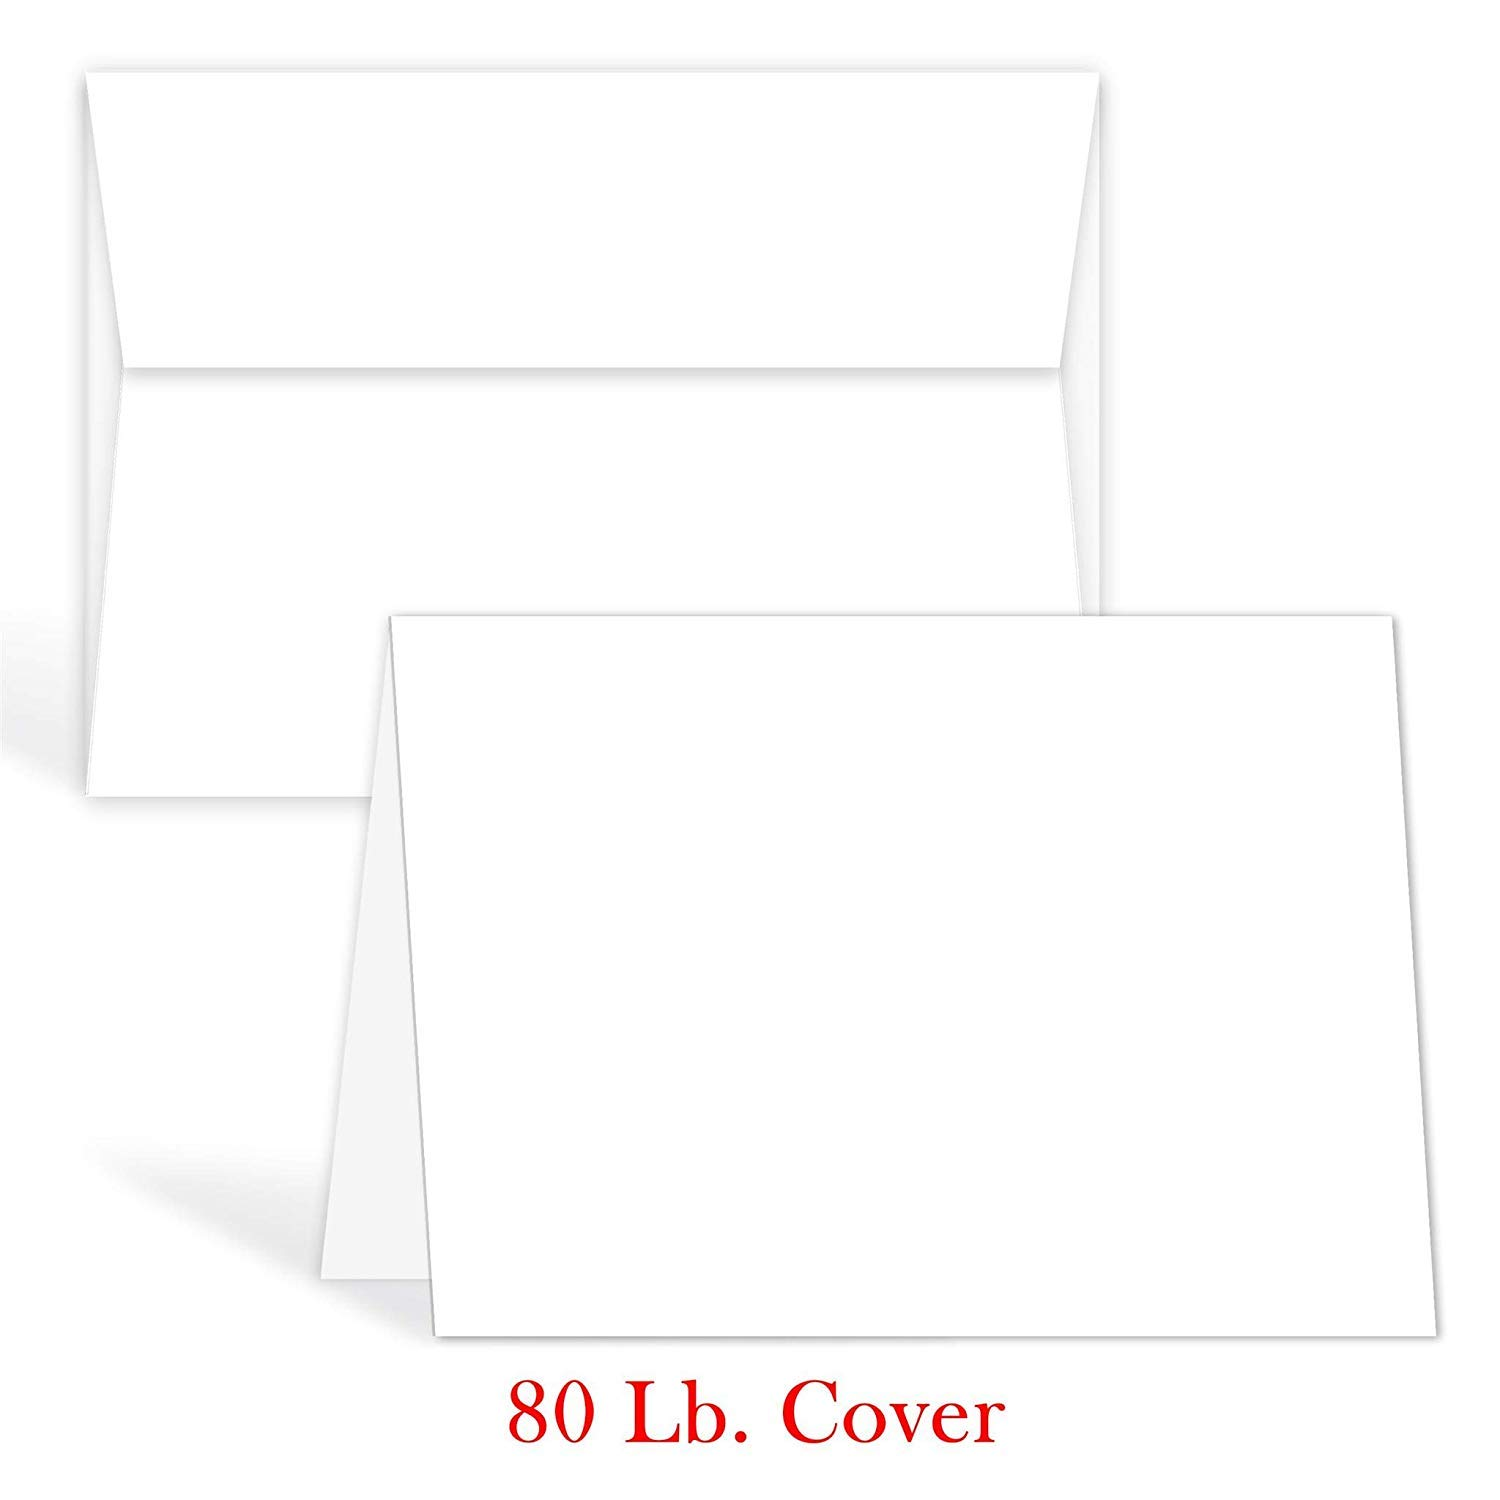 Greeting Cards Set 5x7 Blank White Cardstock And Envelopes Perfect For Business Invitations Bridal Shower Birthday Interoffice Invitation